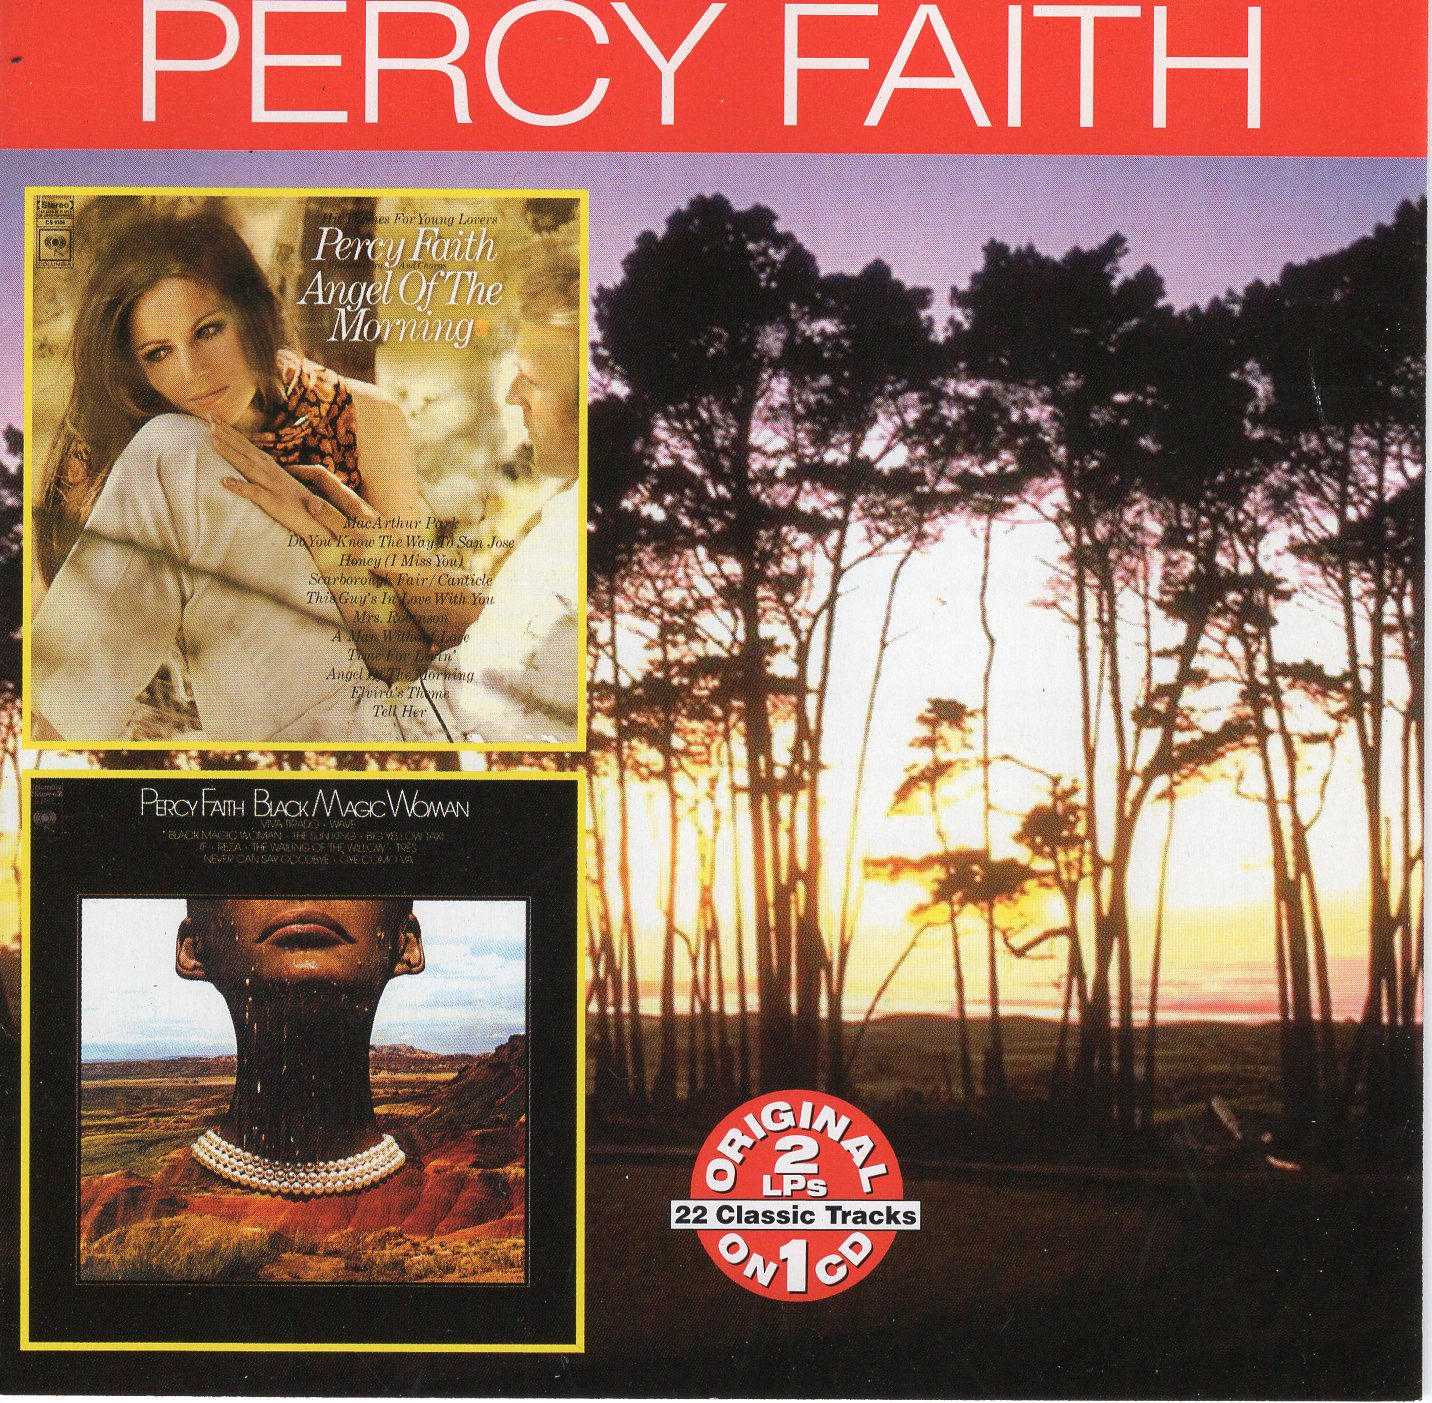 """Percy Faith"" Percy Faith"